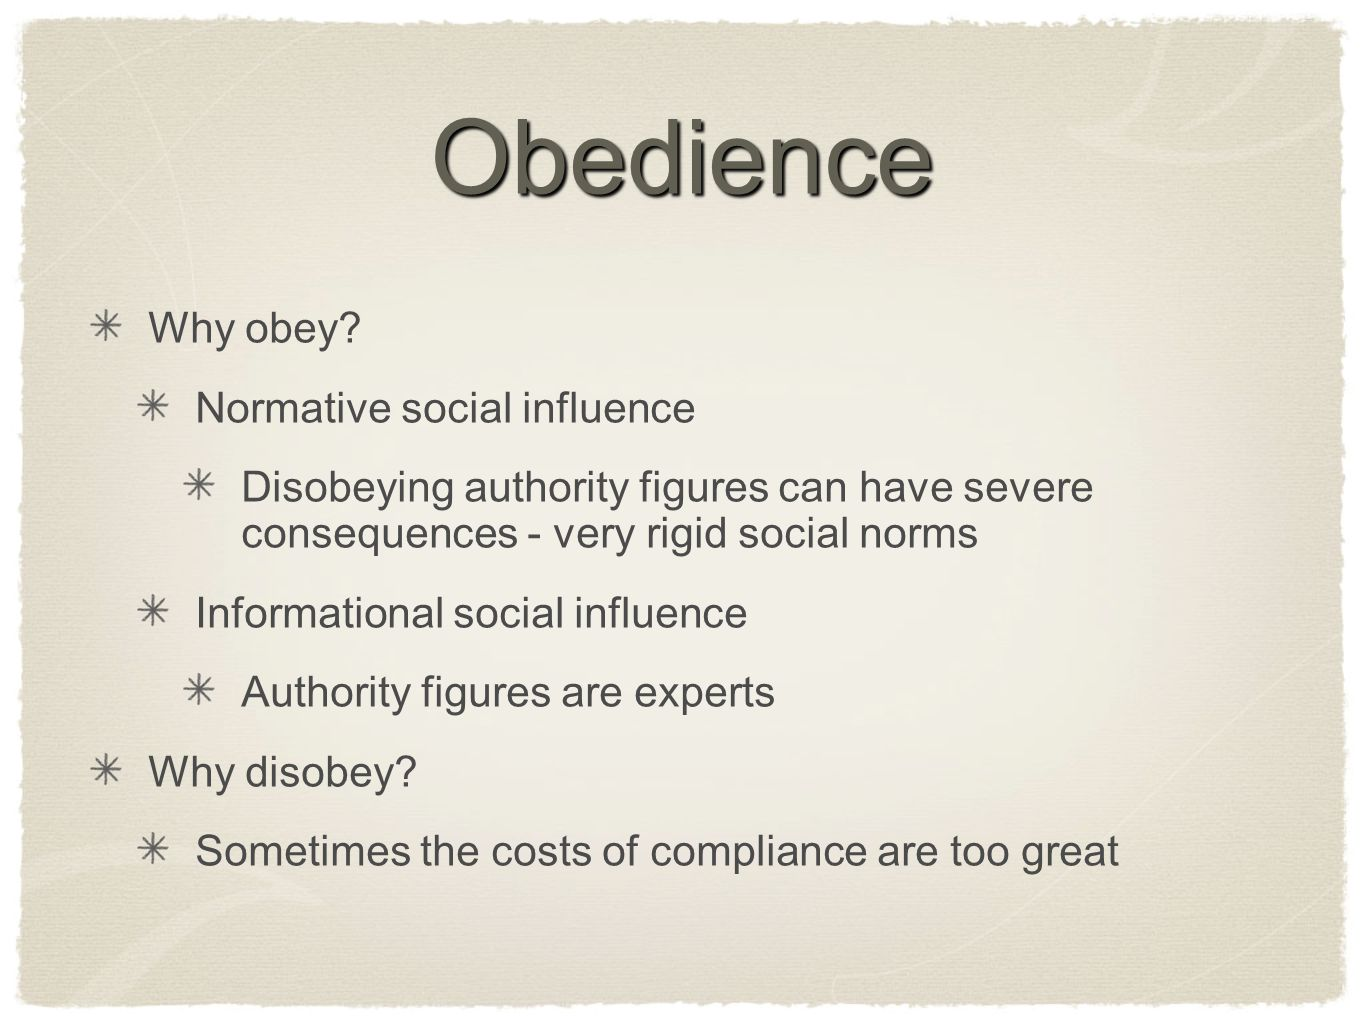 Obedience Why obey? Normative social influence Disobeying authority figures can have severe consequences - very rigid social norms Informational socia